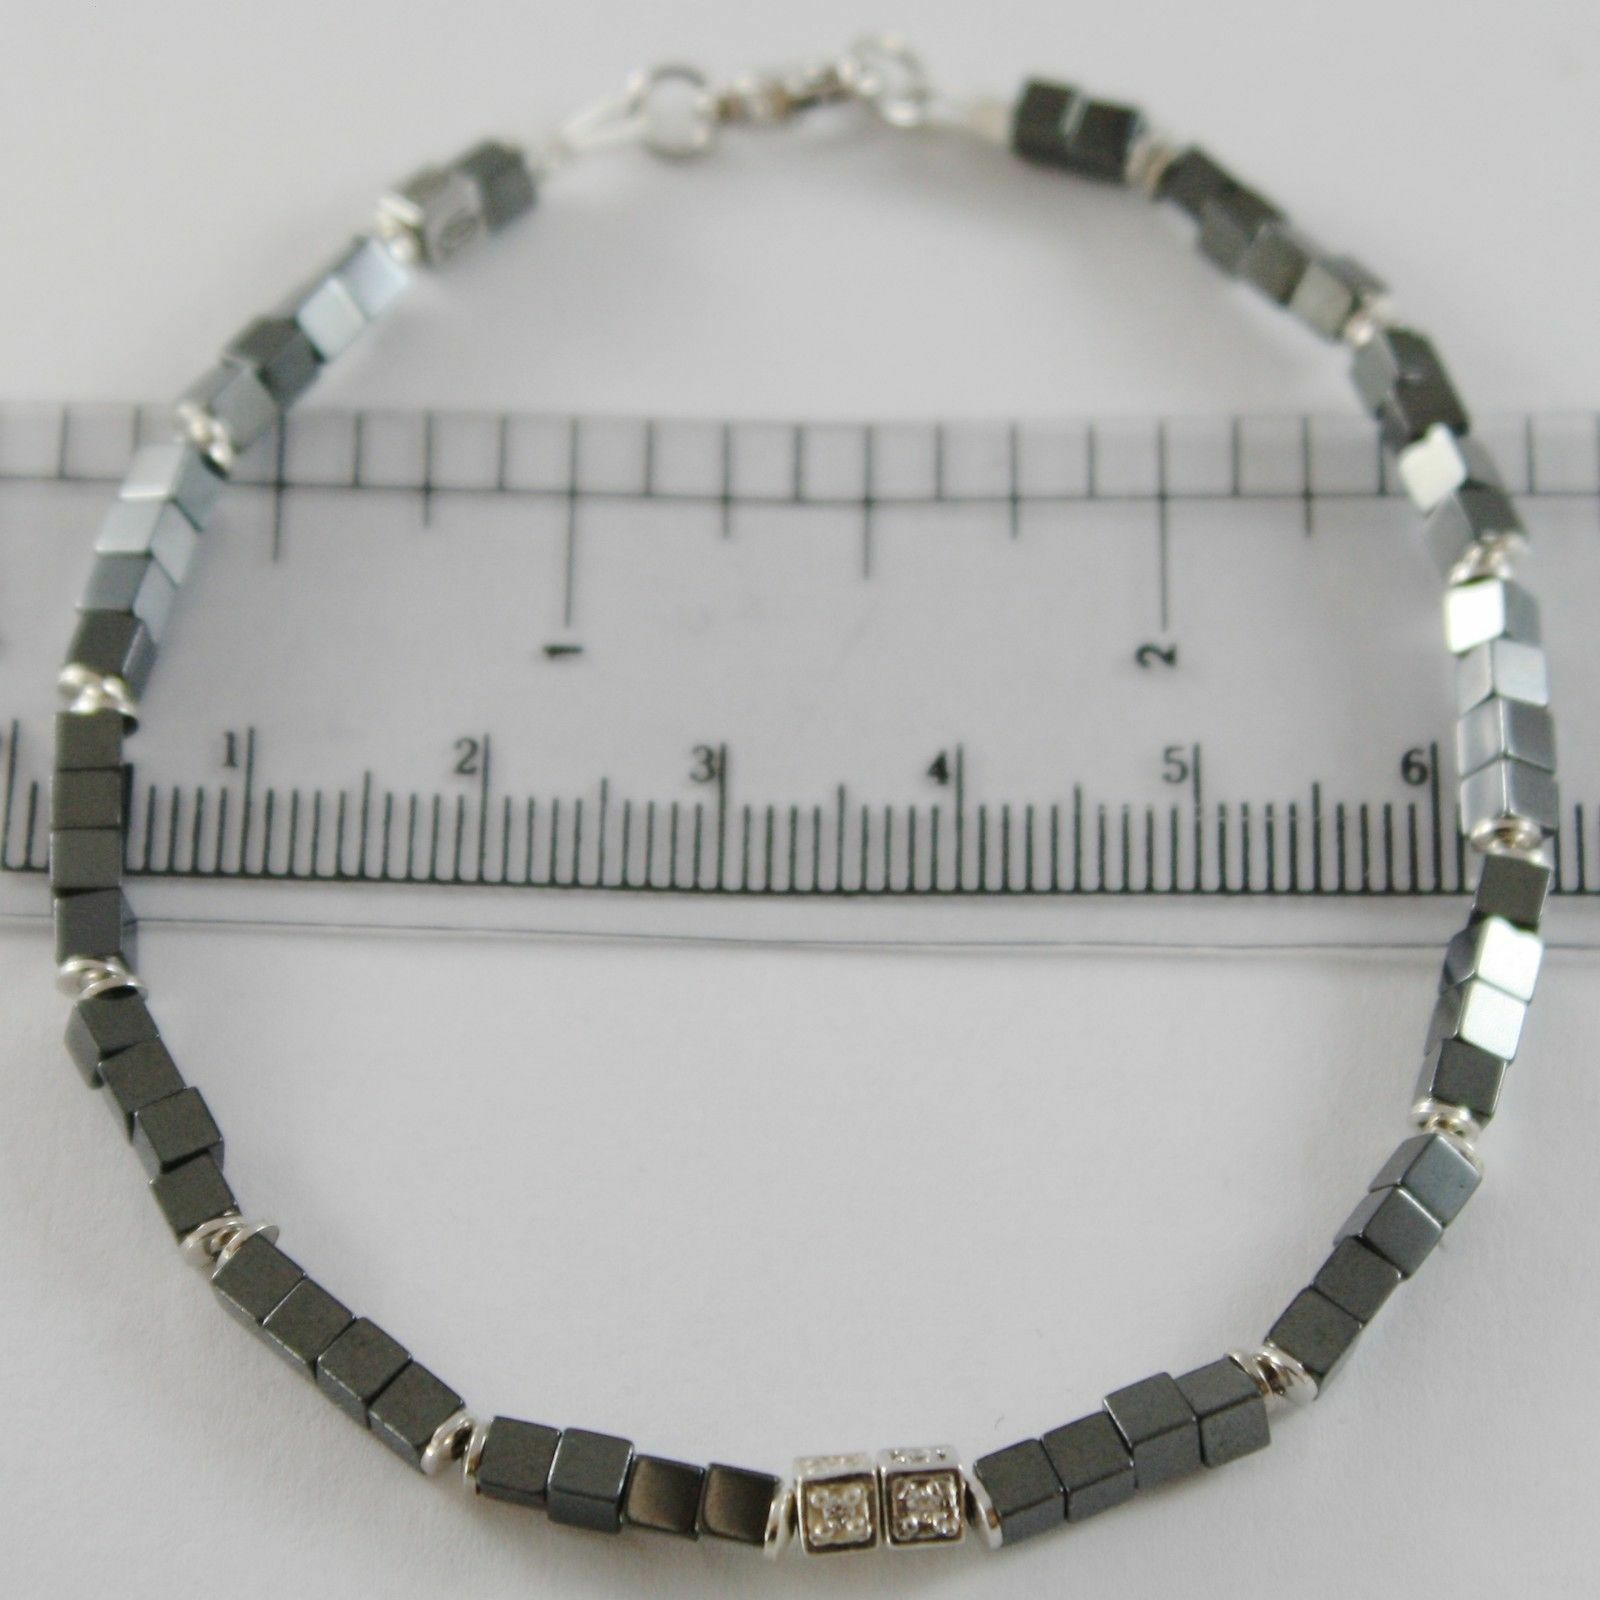 BRACELET GIADAN DANS ARGENT 925 HÉMATITE BRILLANTE ET DIAMANTS BLANC MADE IN